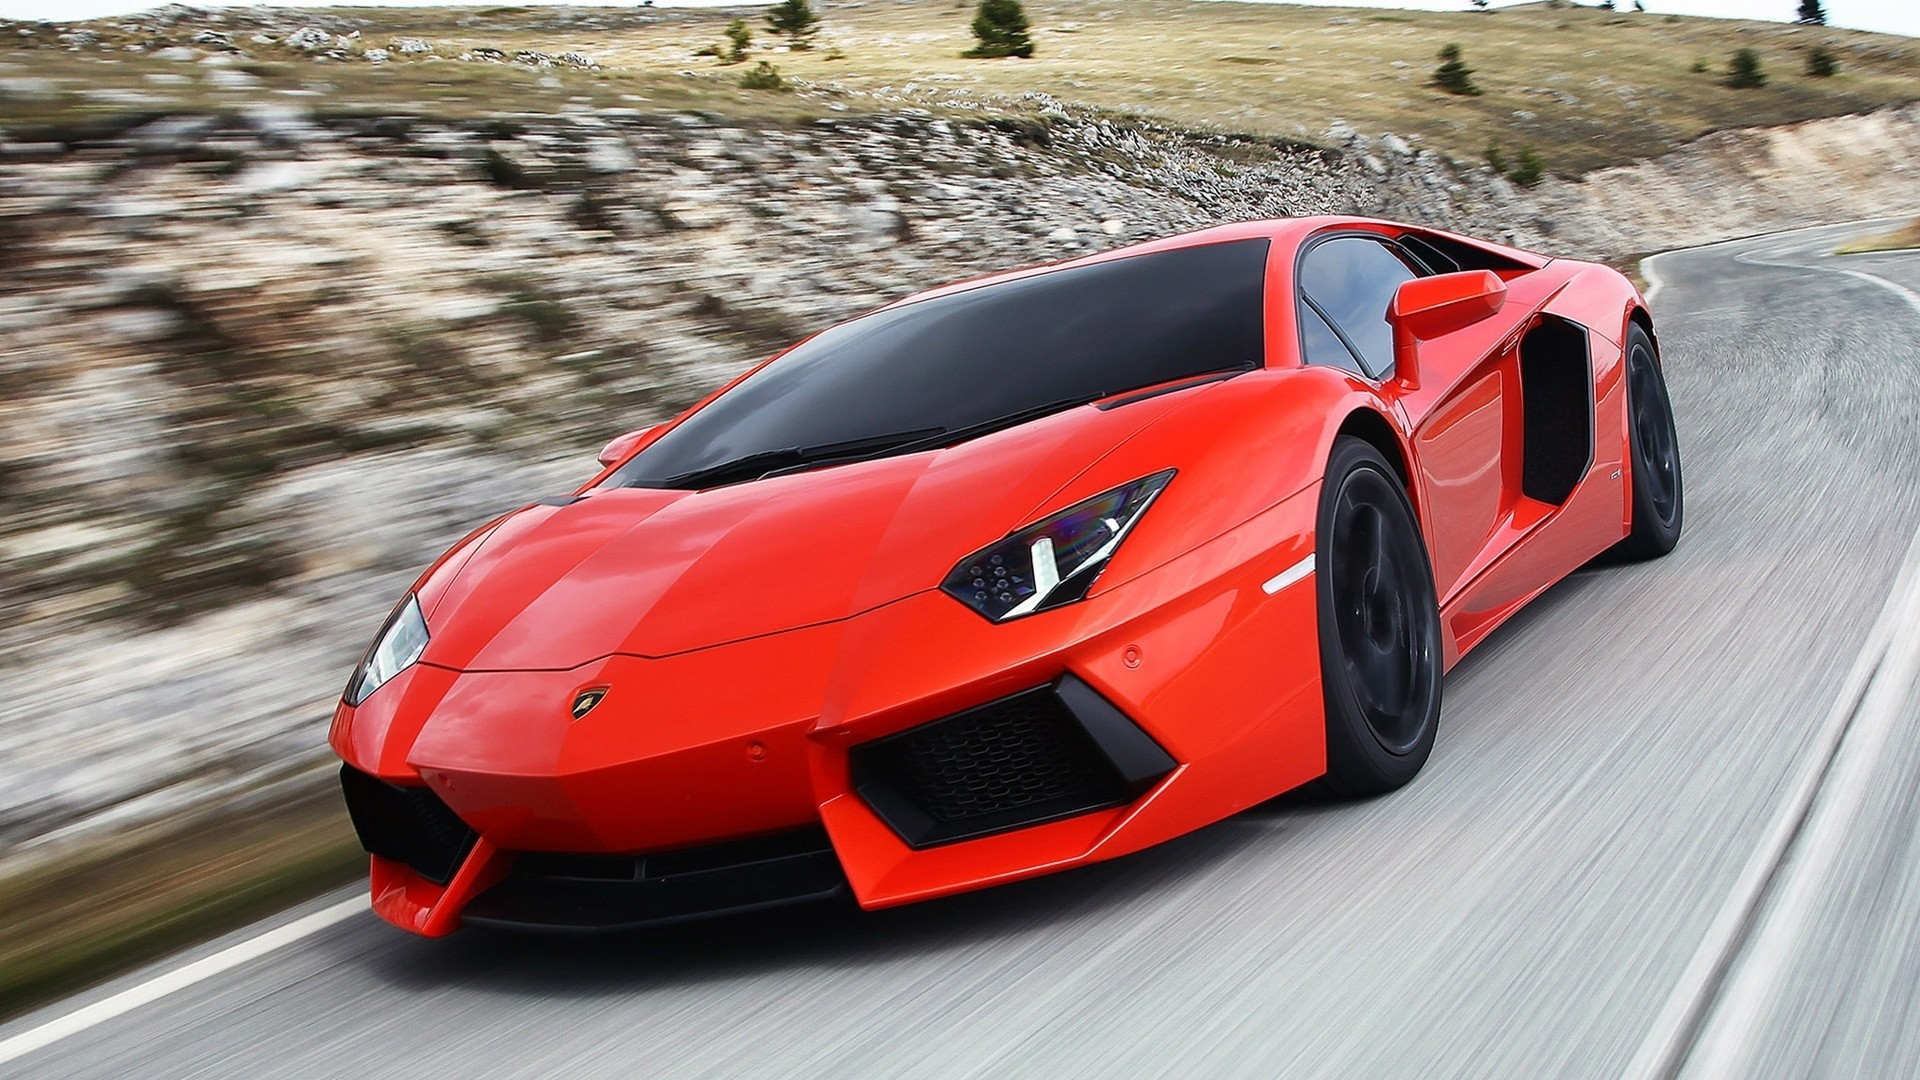 Red Cars Lamborghini Aventador Supercar Wallpaper 1920x1080px